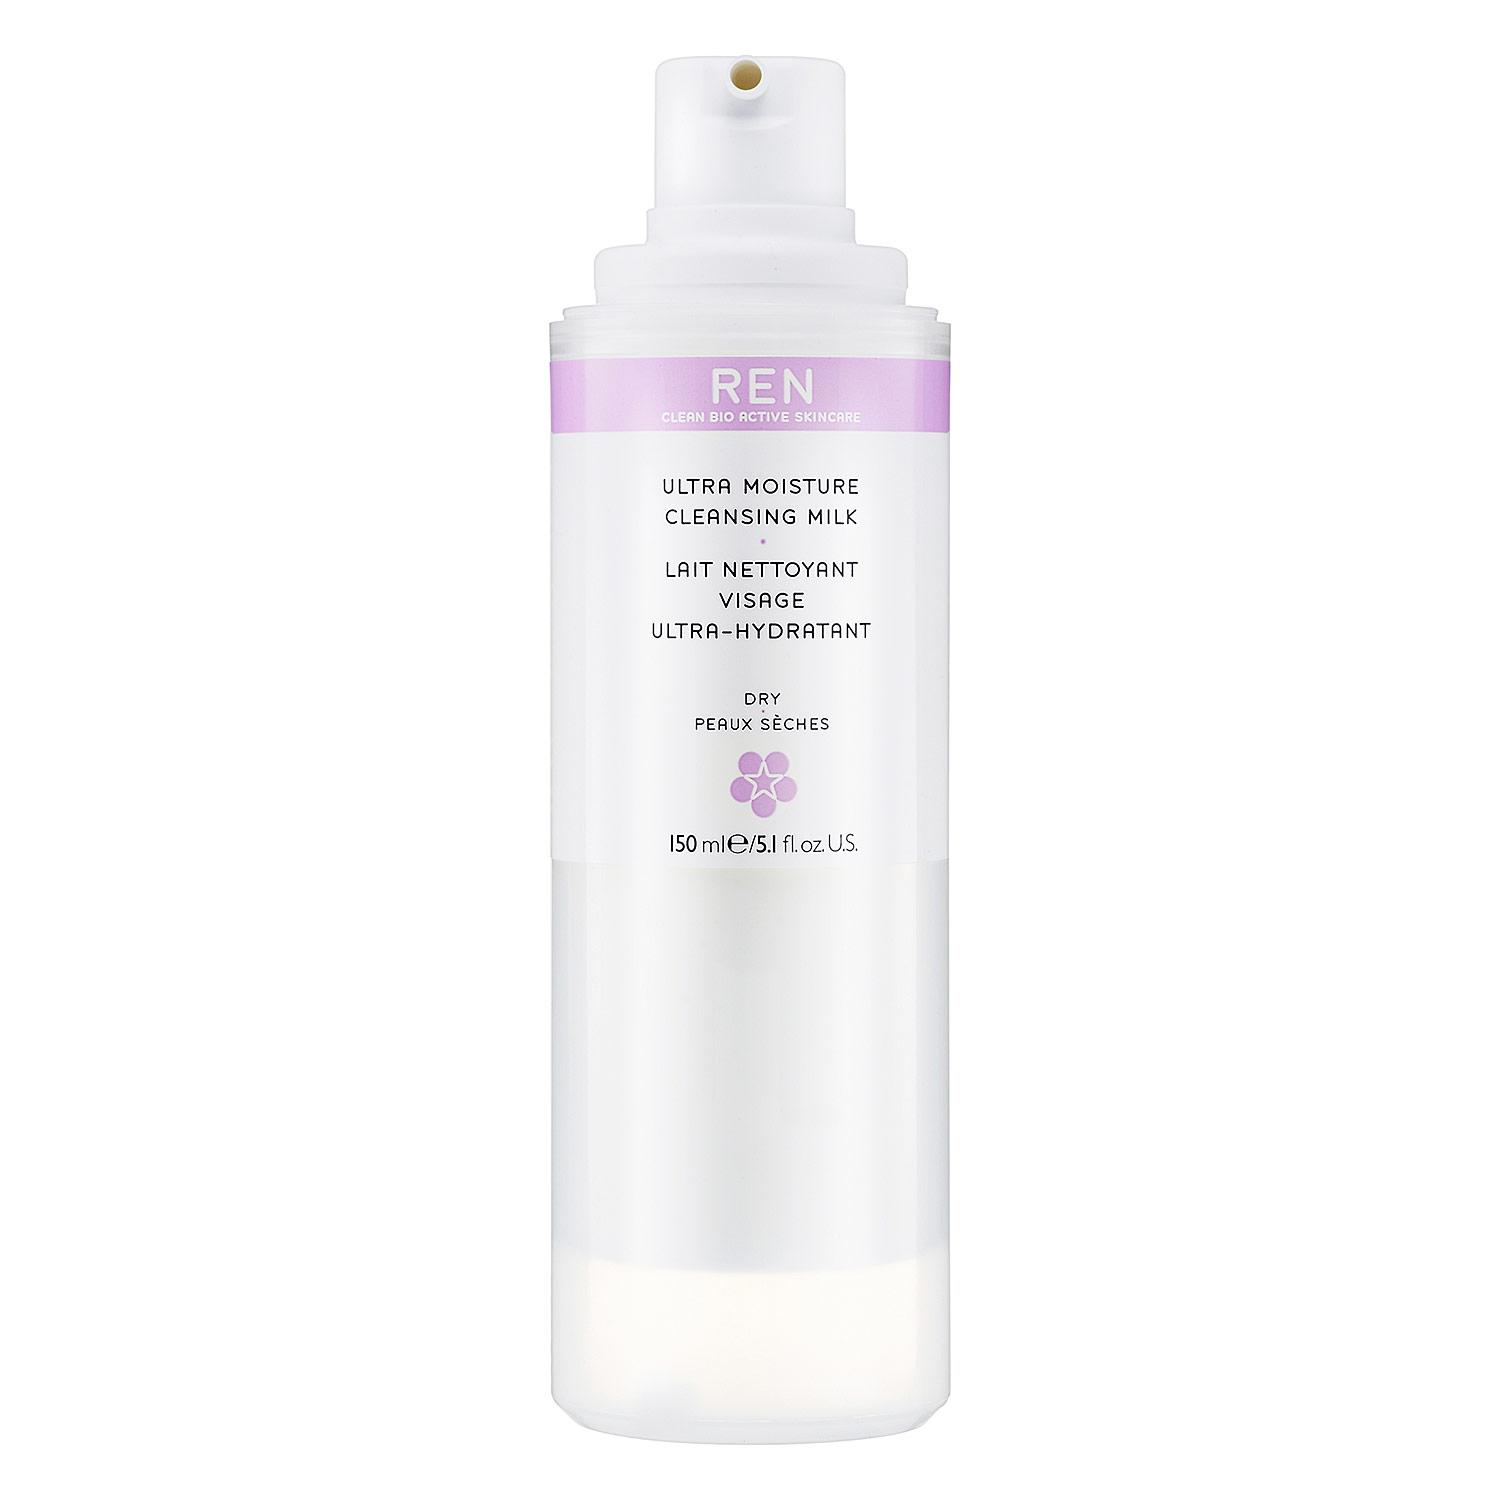 Ultra Moisture Cleansing Milk